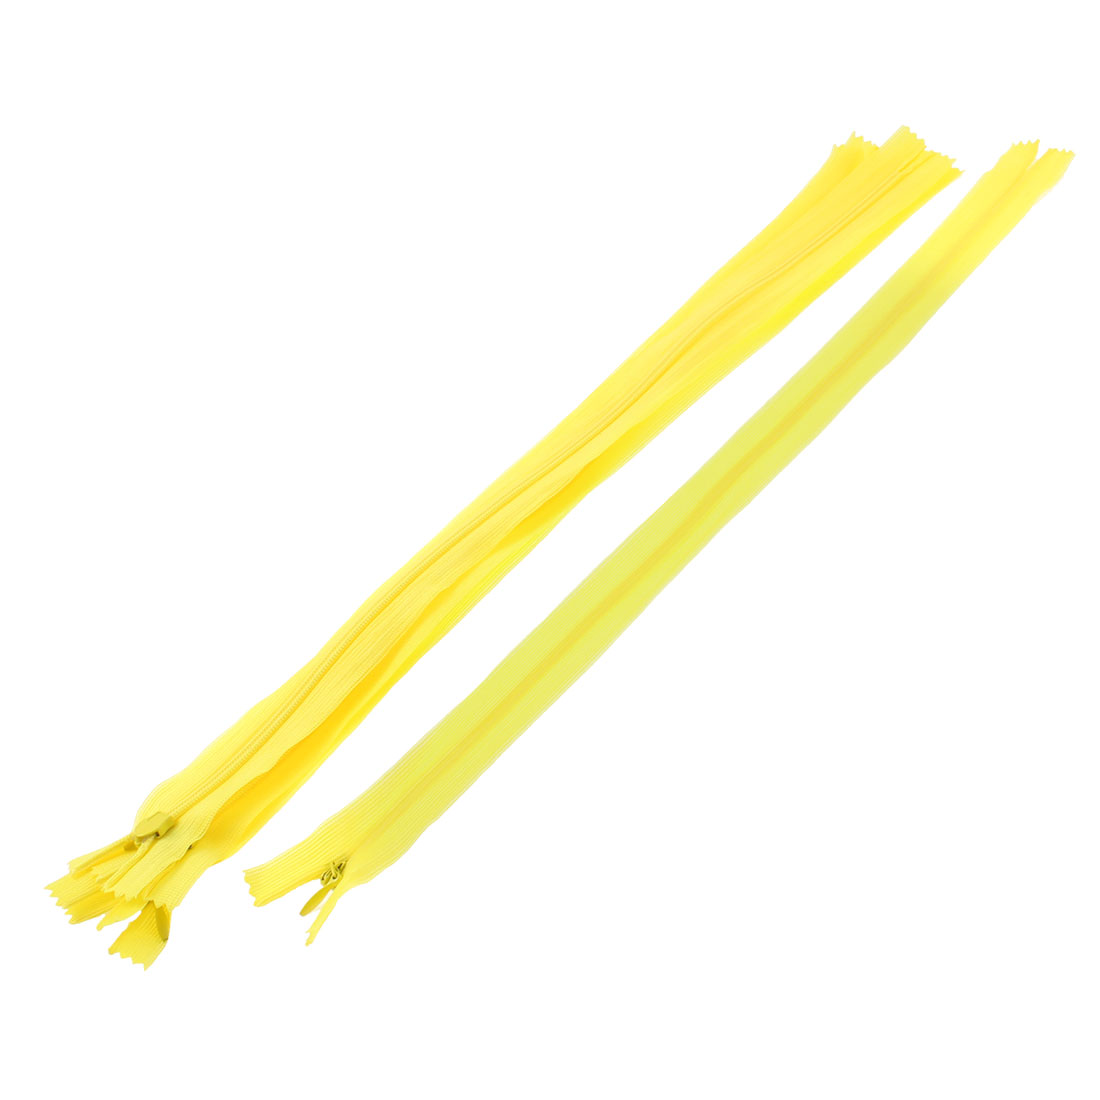 Dress Pants Closed End Nylon Zippers Tailor Sewing Craft Tool Yellow 40cm 5 Pcs